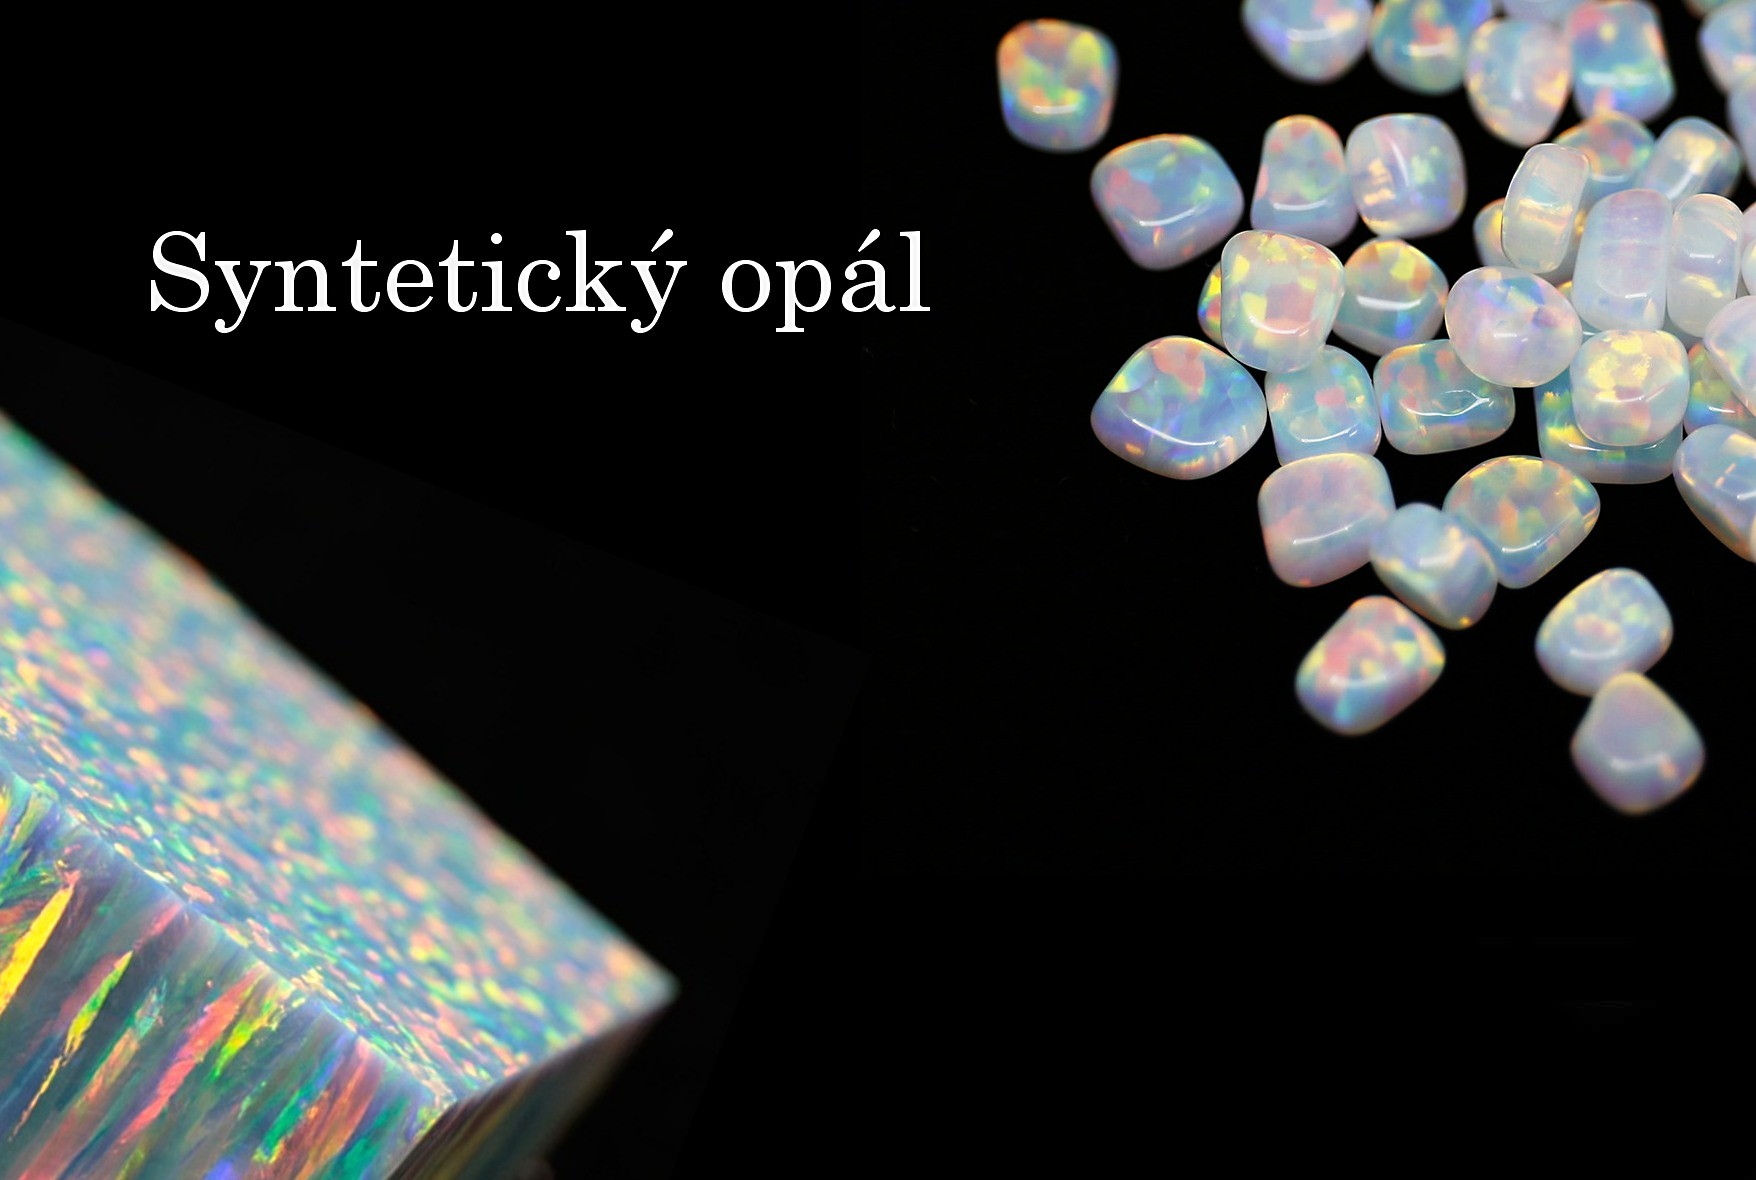 The Synthetic Opal